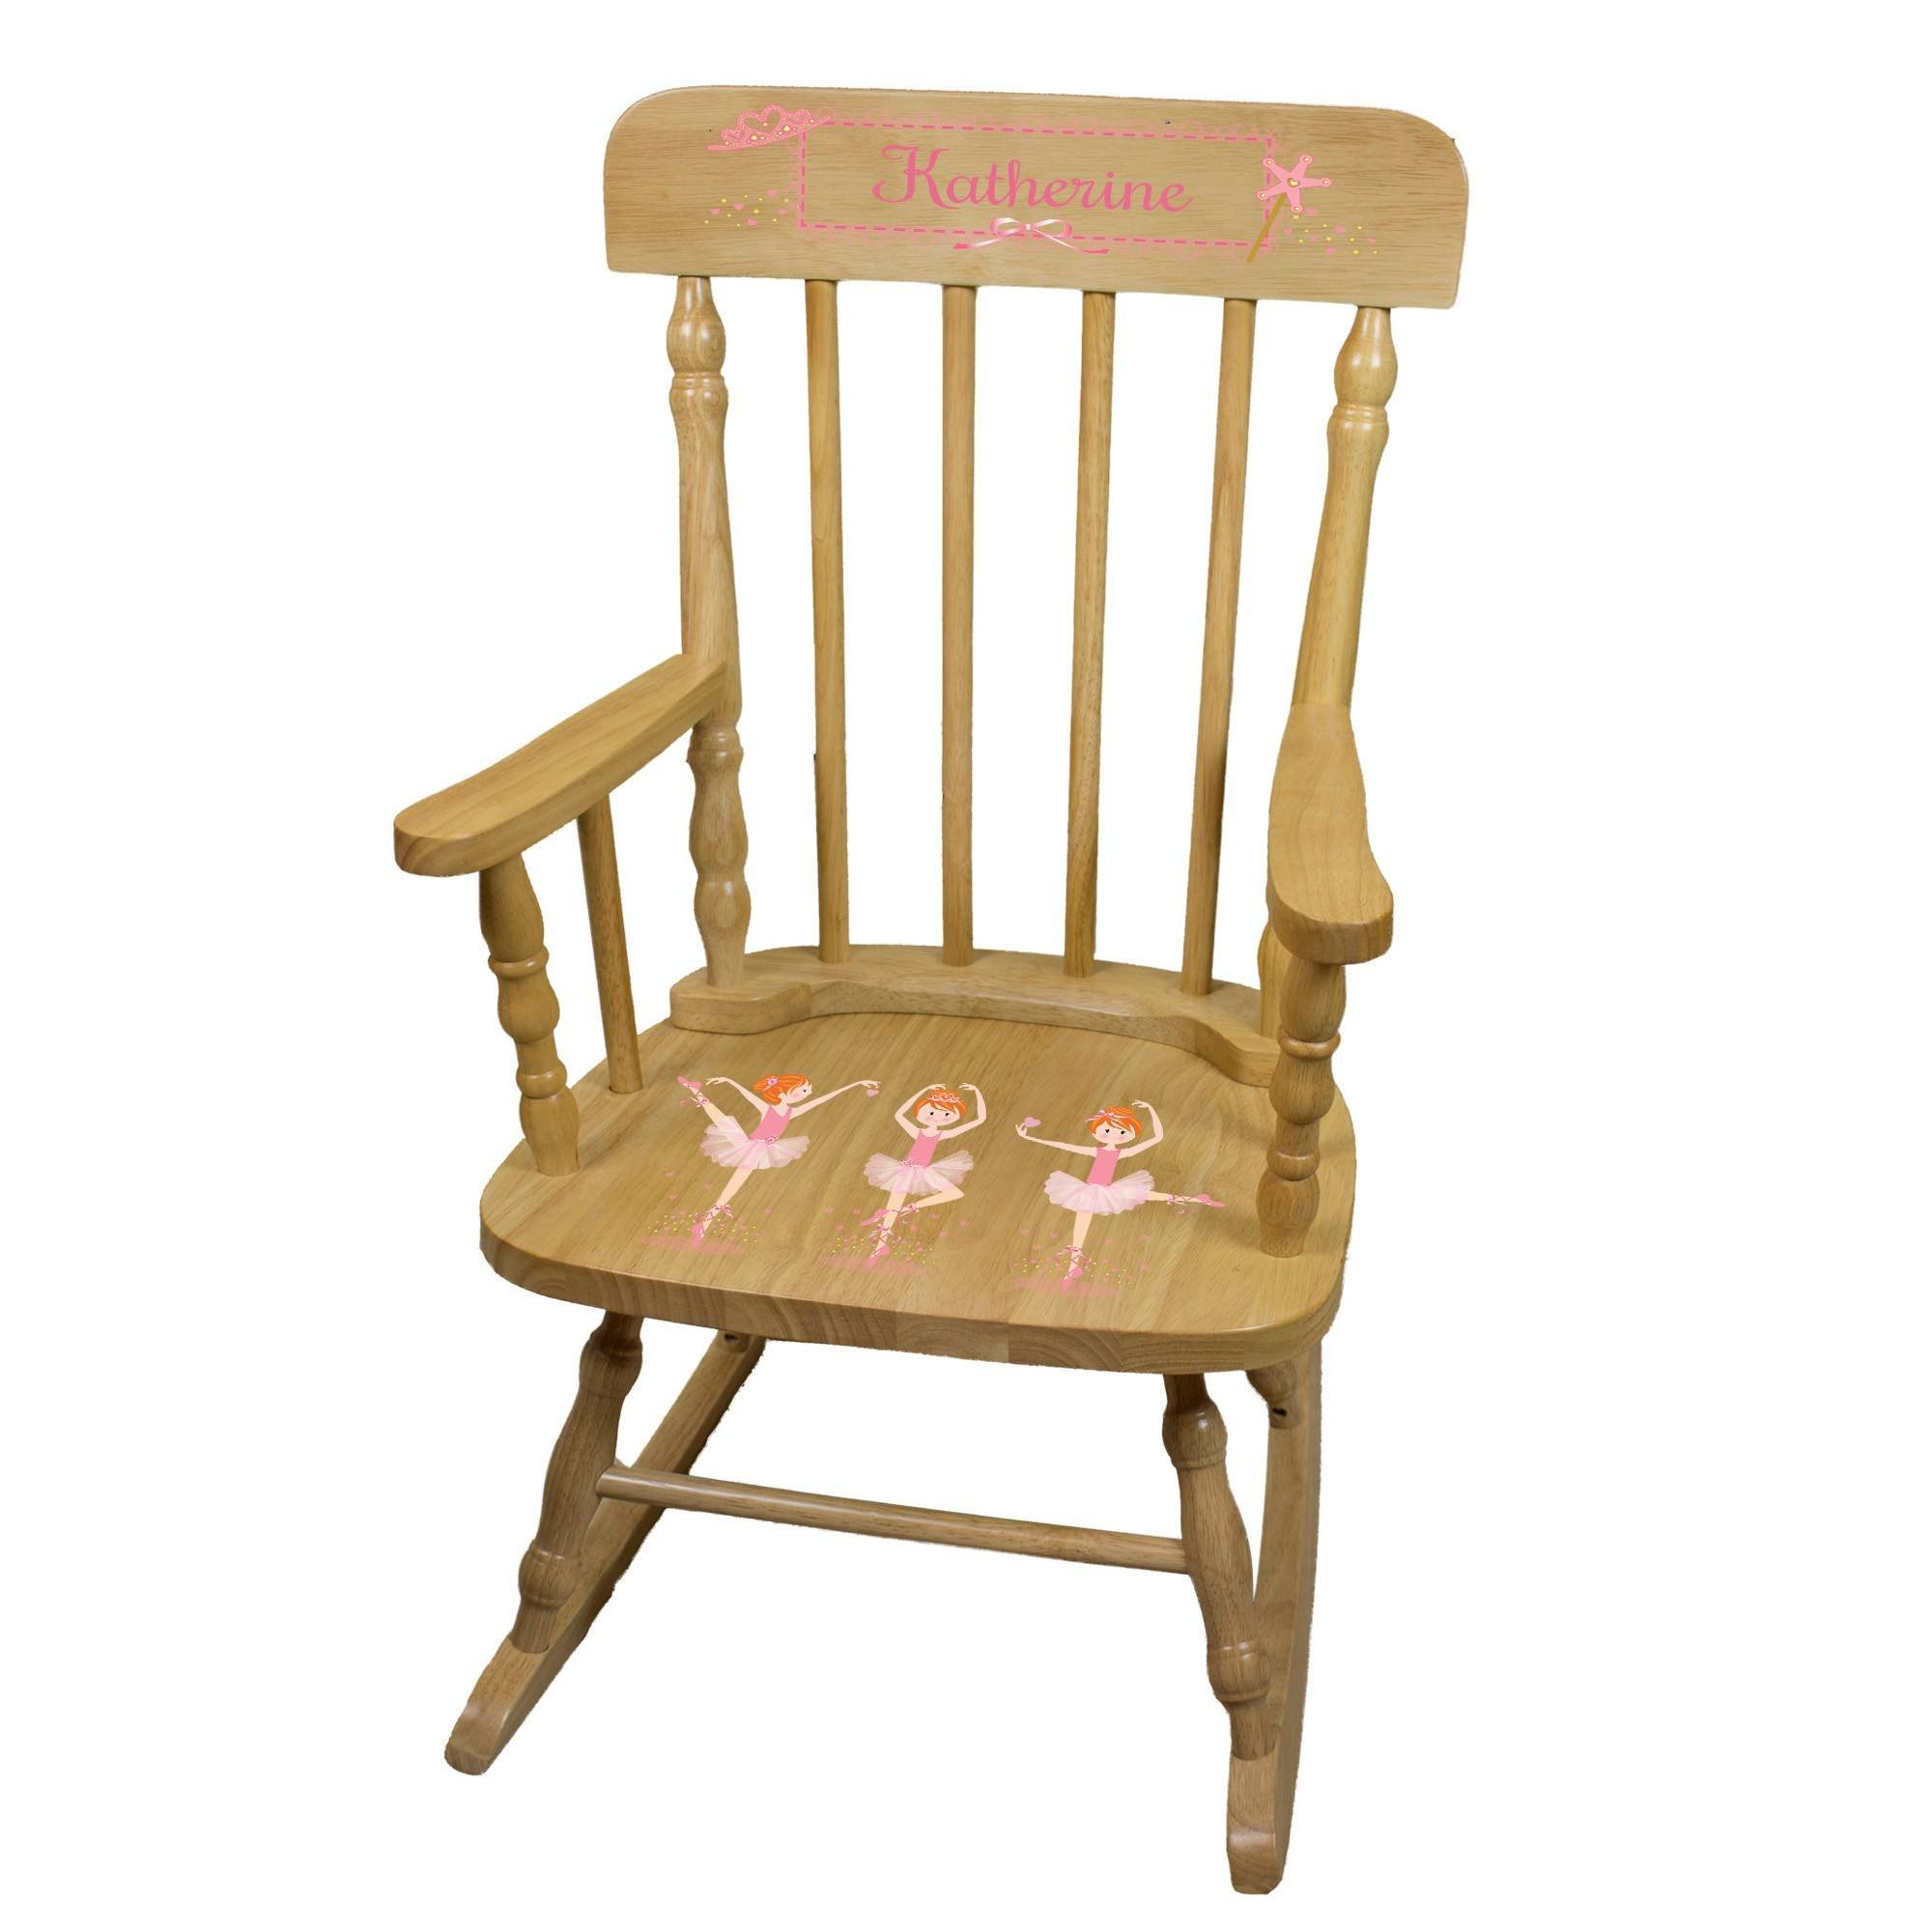 MyBambino Personalized Ballerina Red Hair Natural Wooden Childrens Rocking Chair